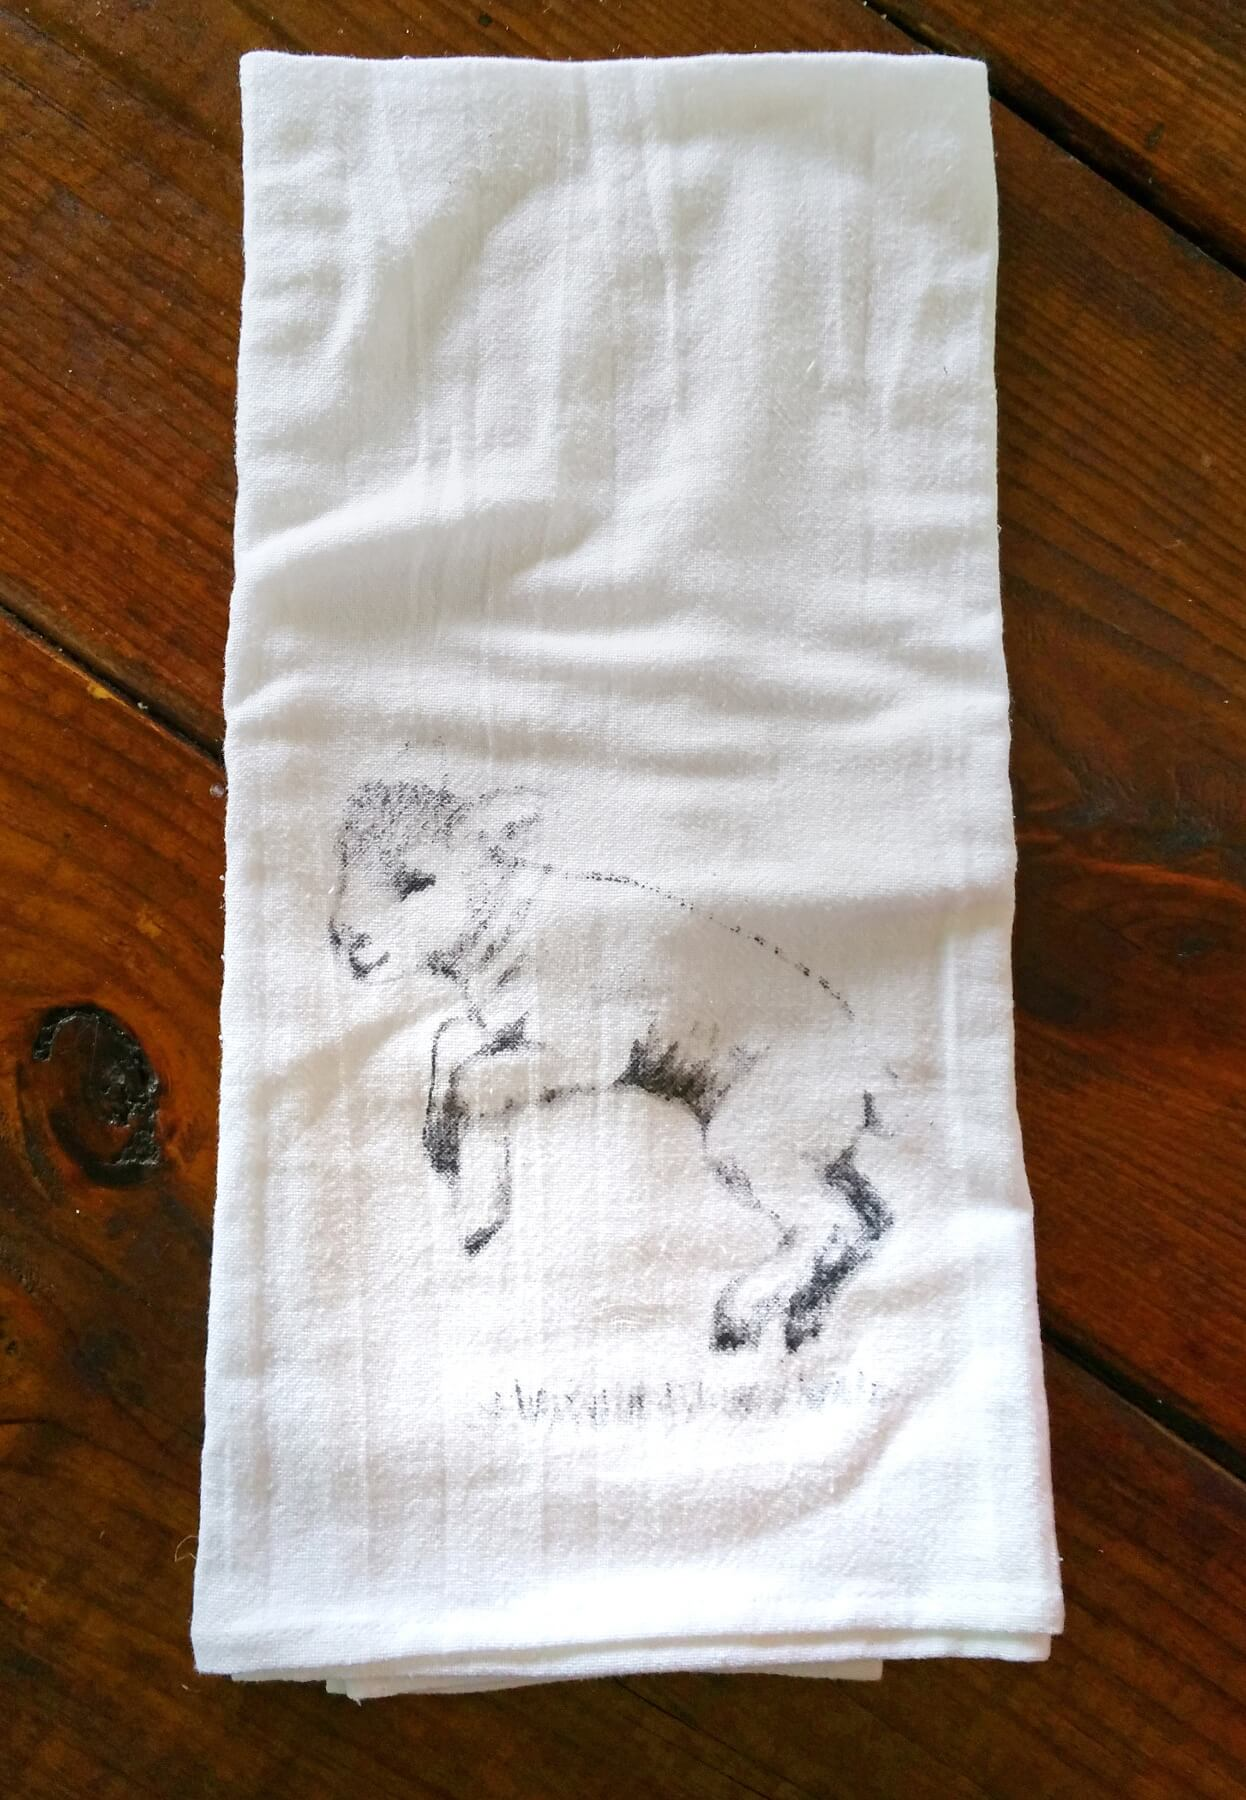 A sweet lamb hops around on this tea towel.